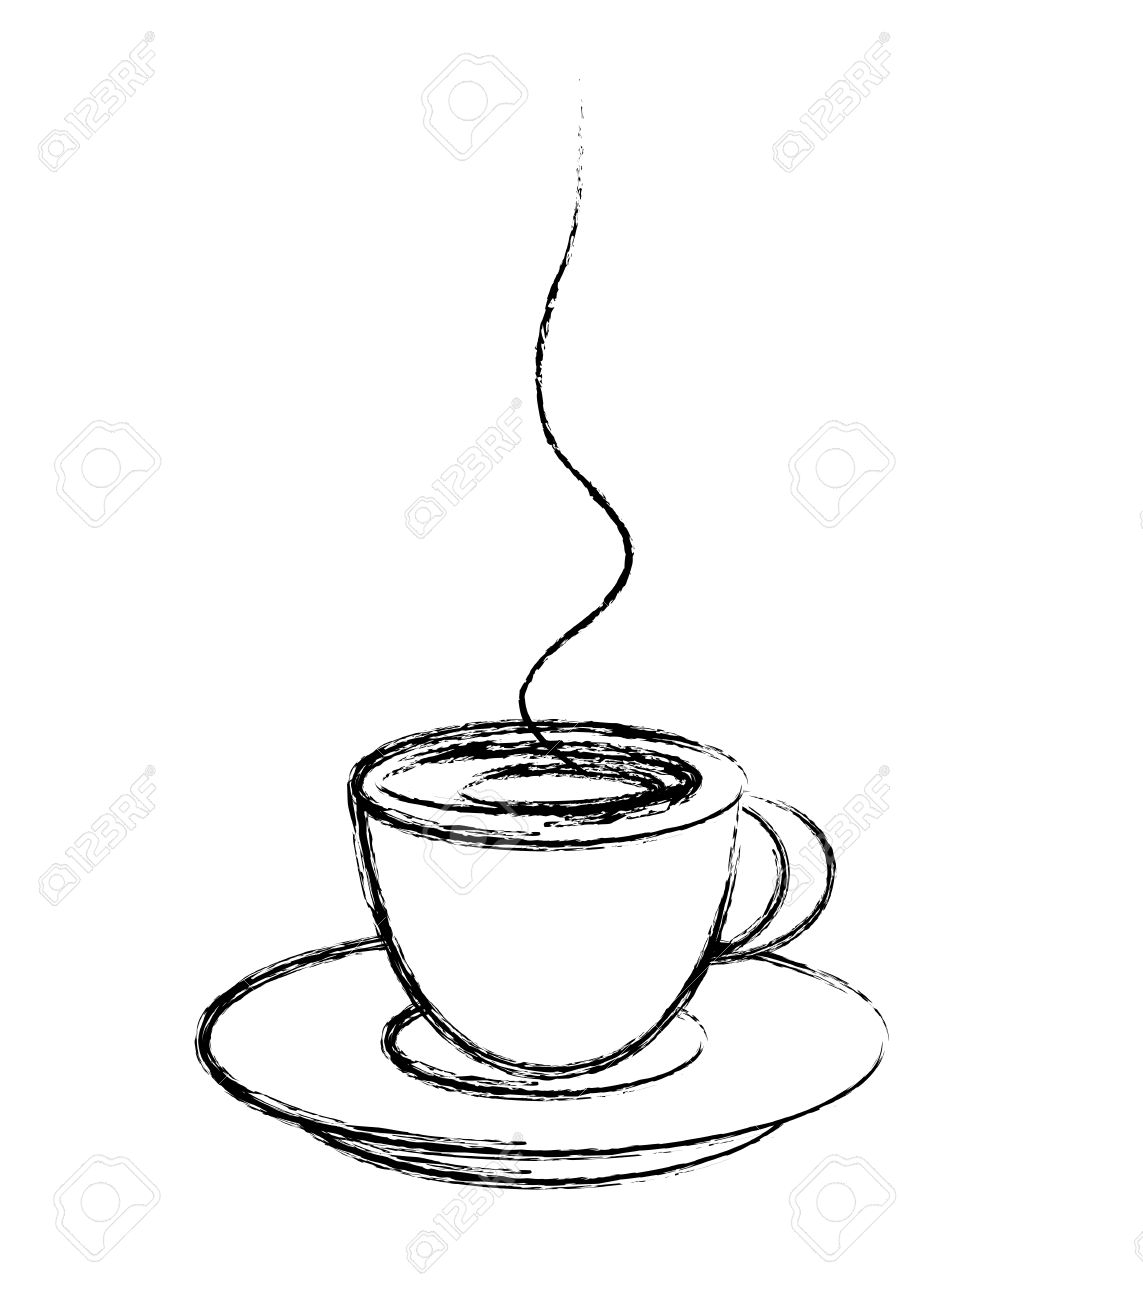 1143x1300 Cup Of Coffee Drawing Stylized Cup Of Coffee, Drawing Style